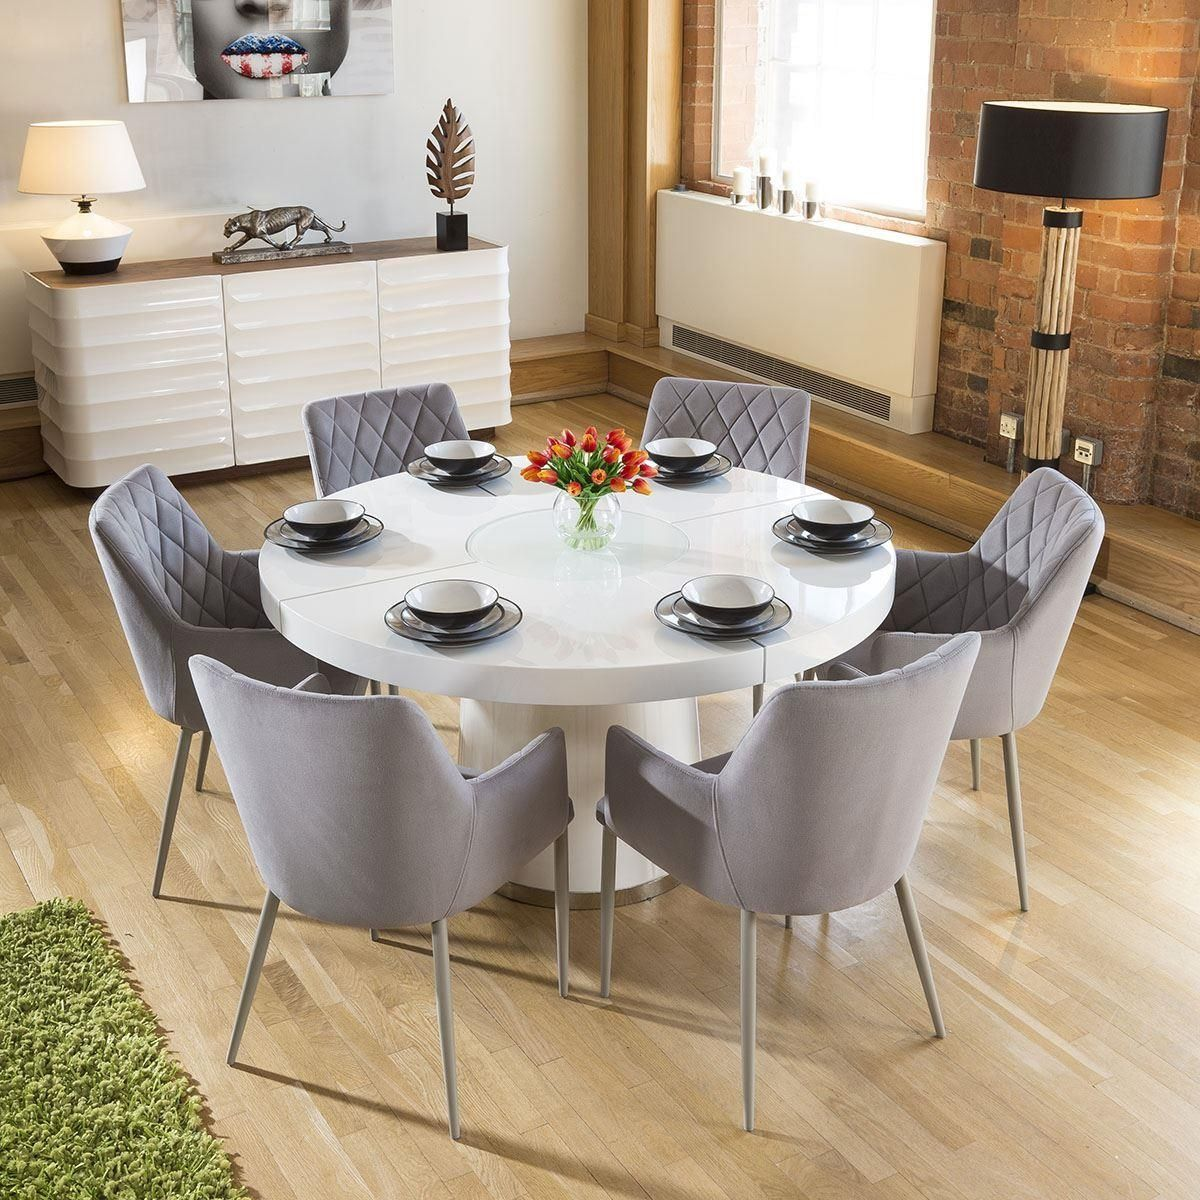 Large White Circular 1 4 Dining Table 6 Ice Grey Carver Chairs Round Dining Table Sets Round Dining Table Dining Table